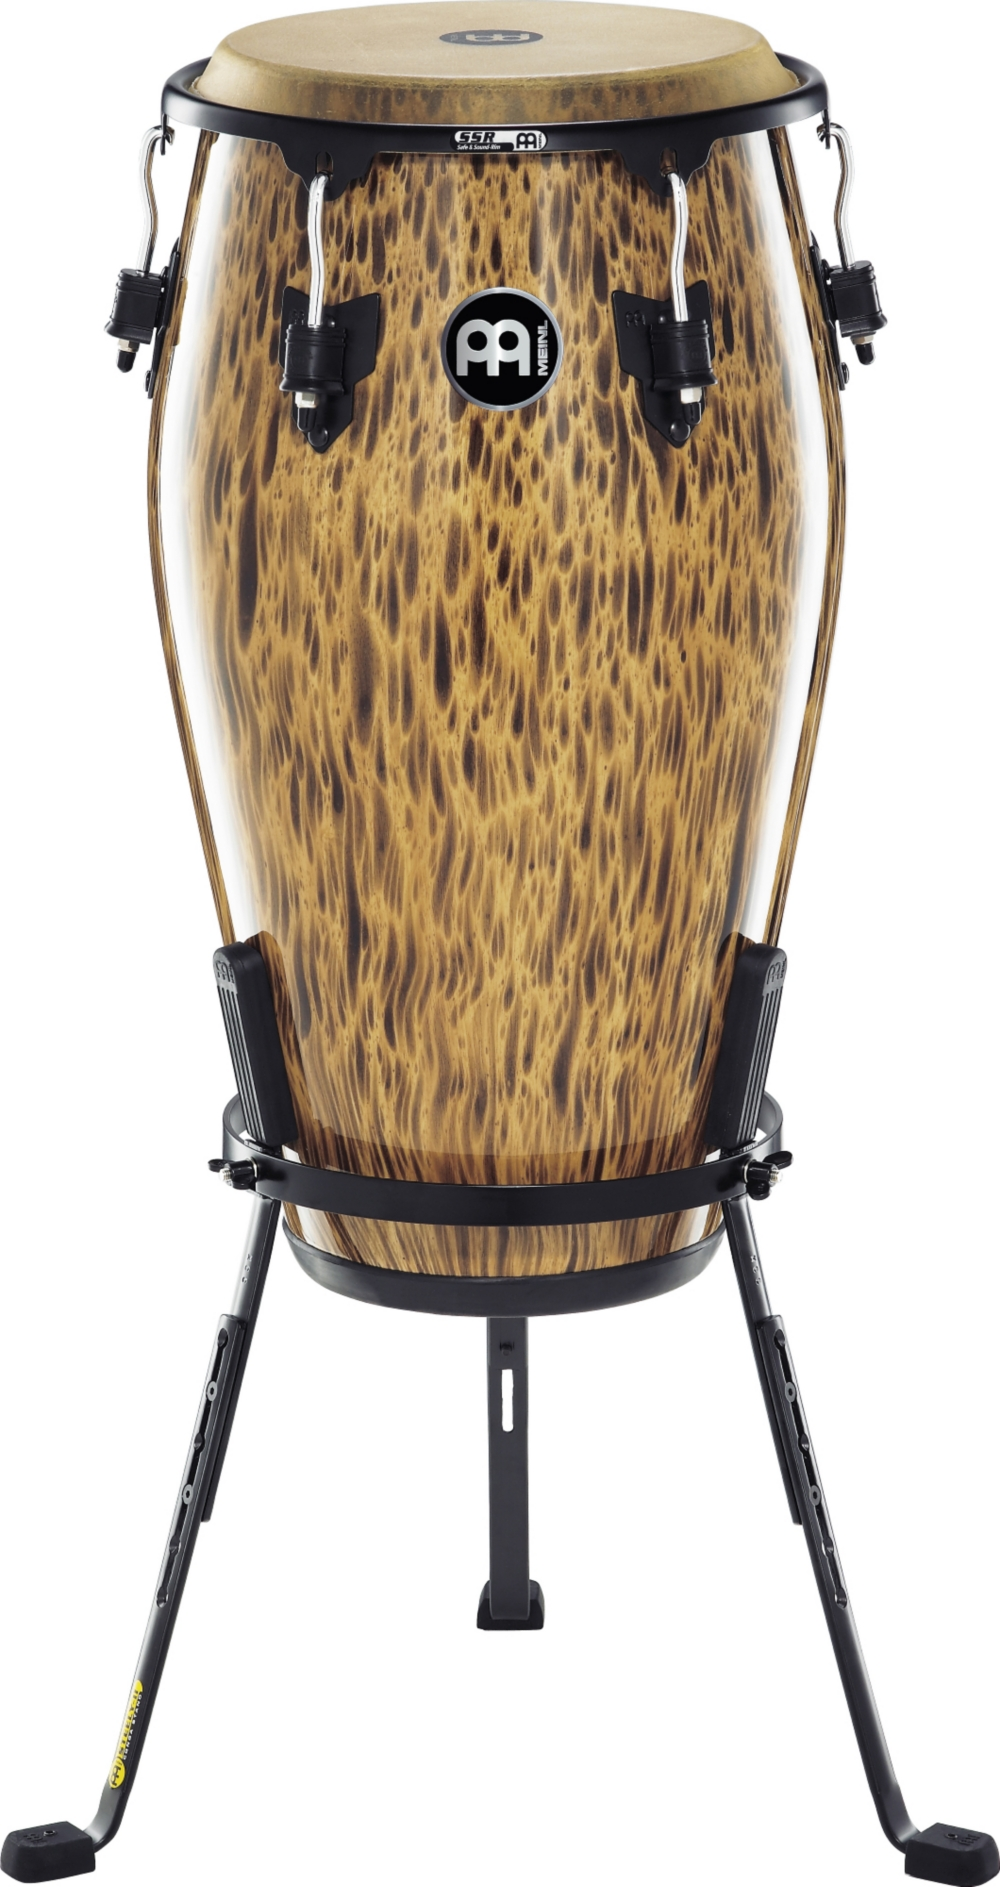 30th Anniversary Edition Marathon Classic Series Conga with Steely II Stand by Meinl